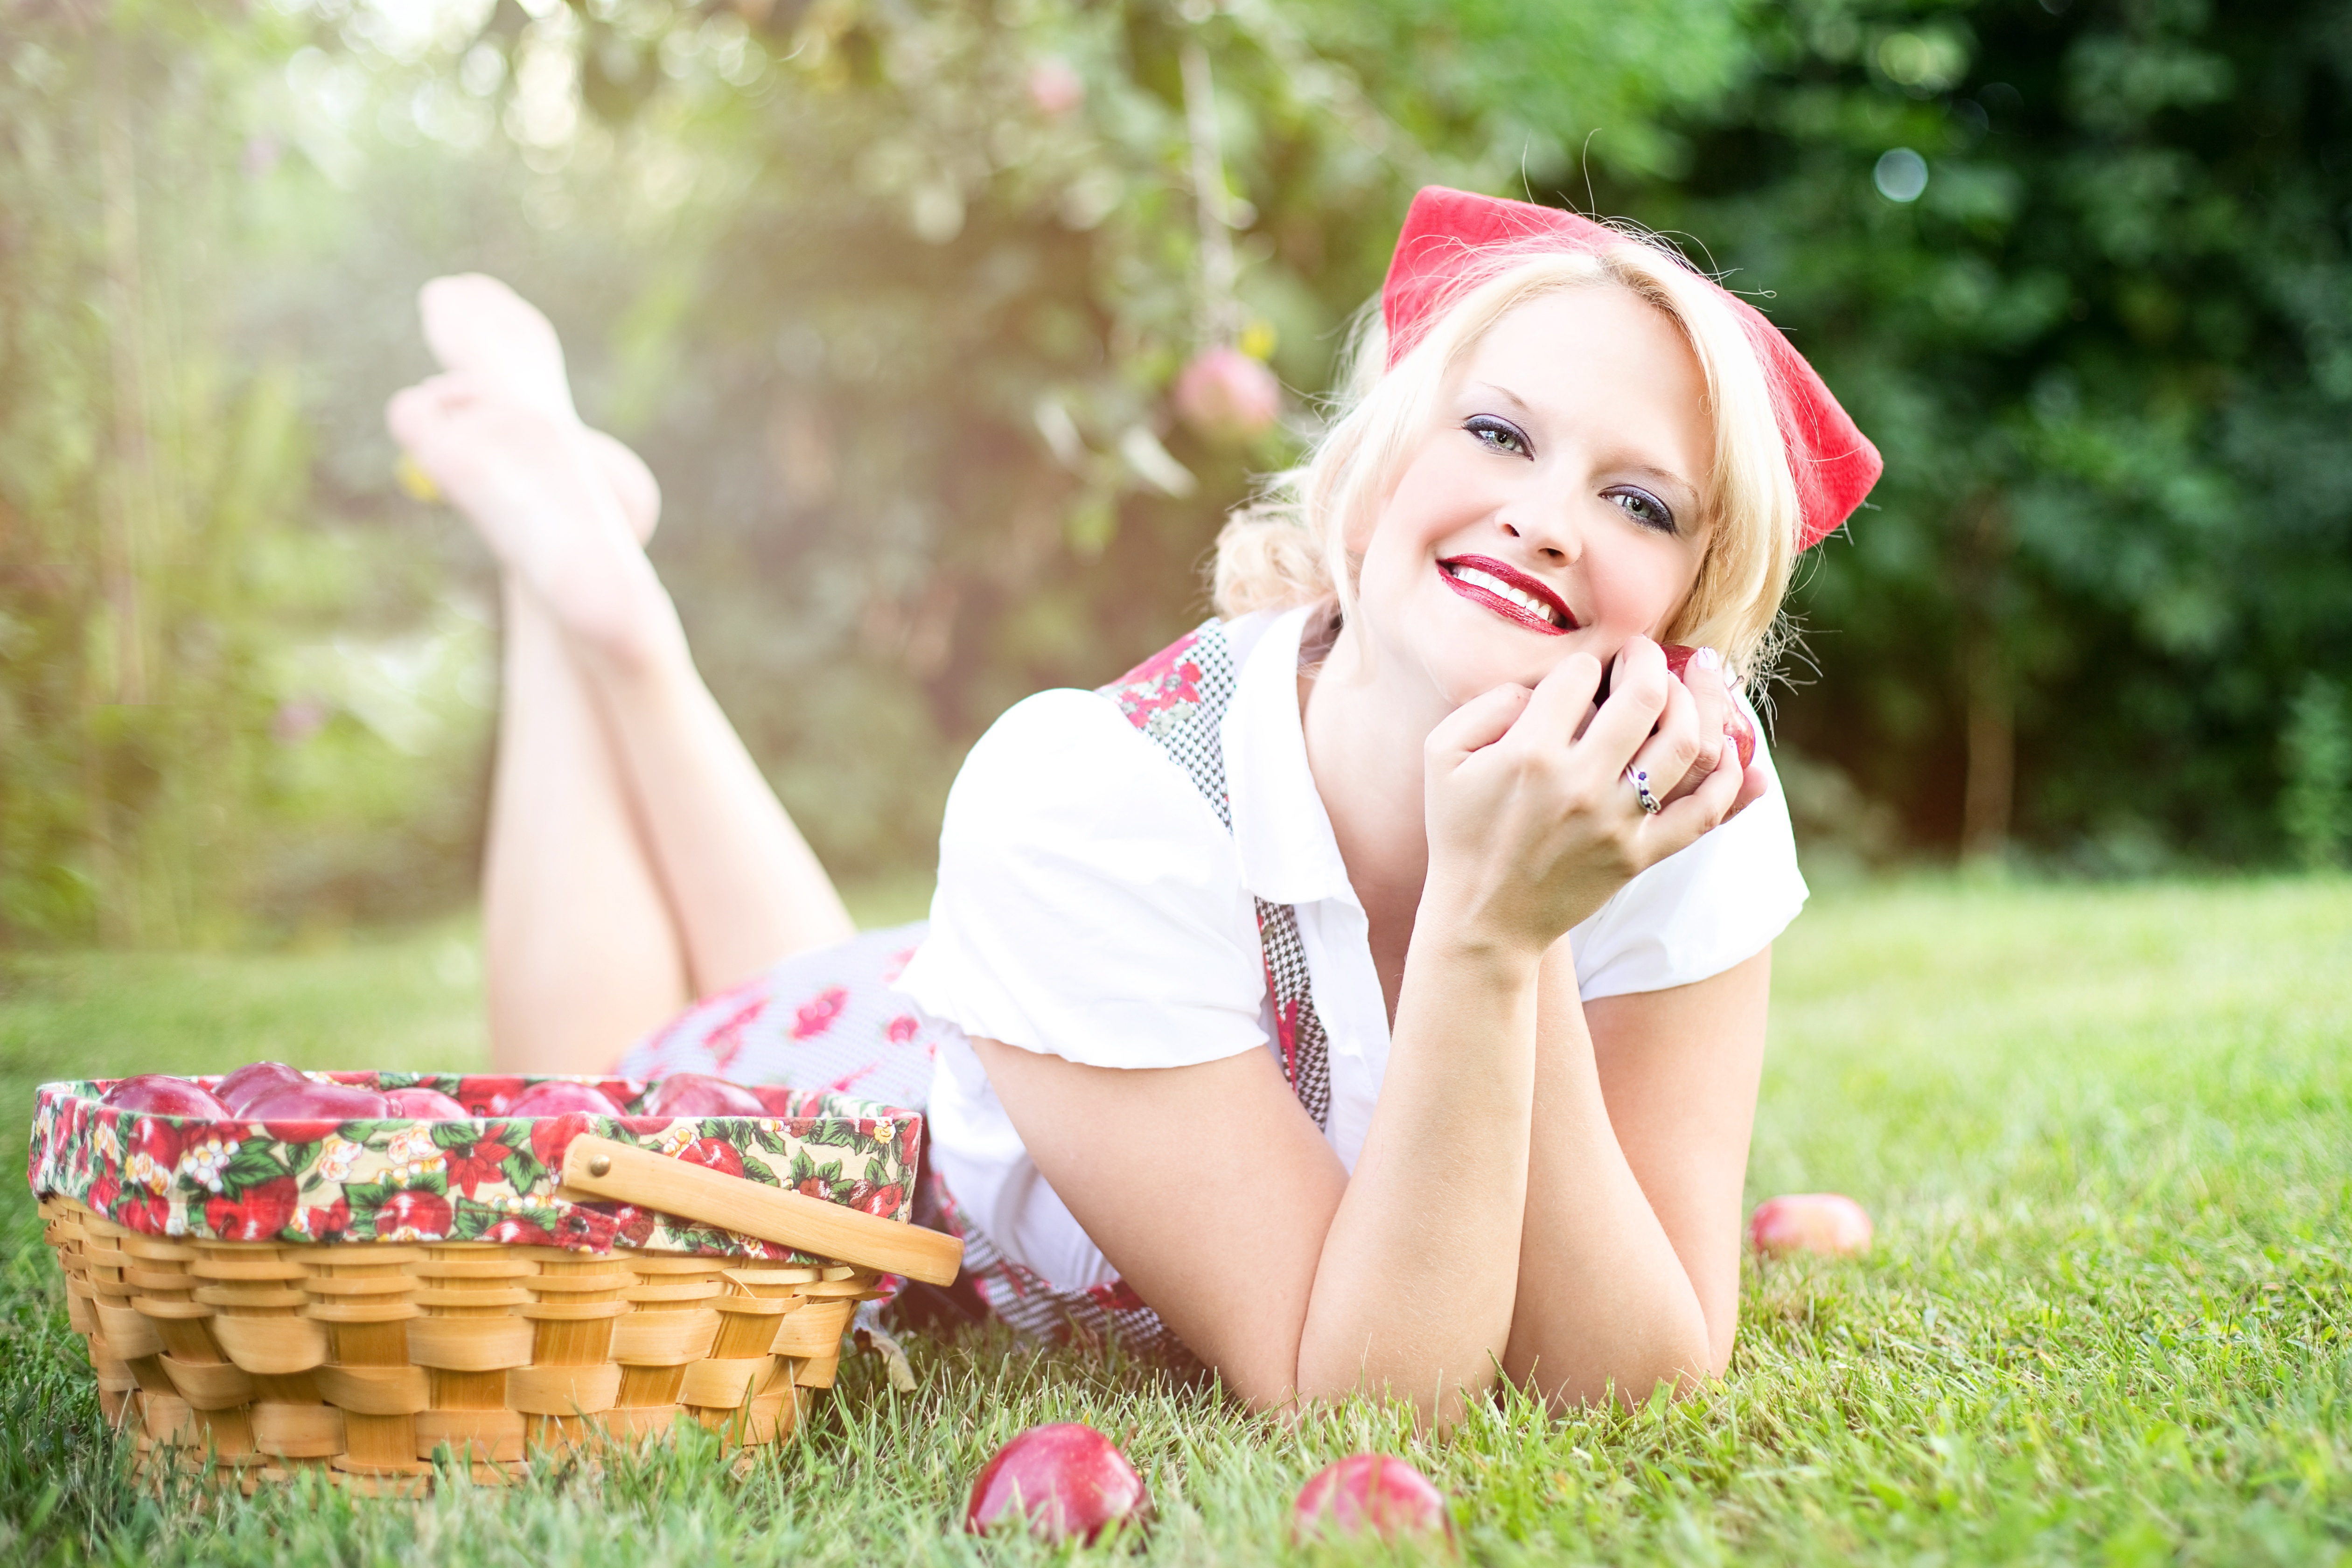 Posing with the apple basket photo